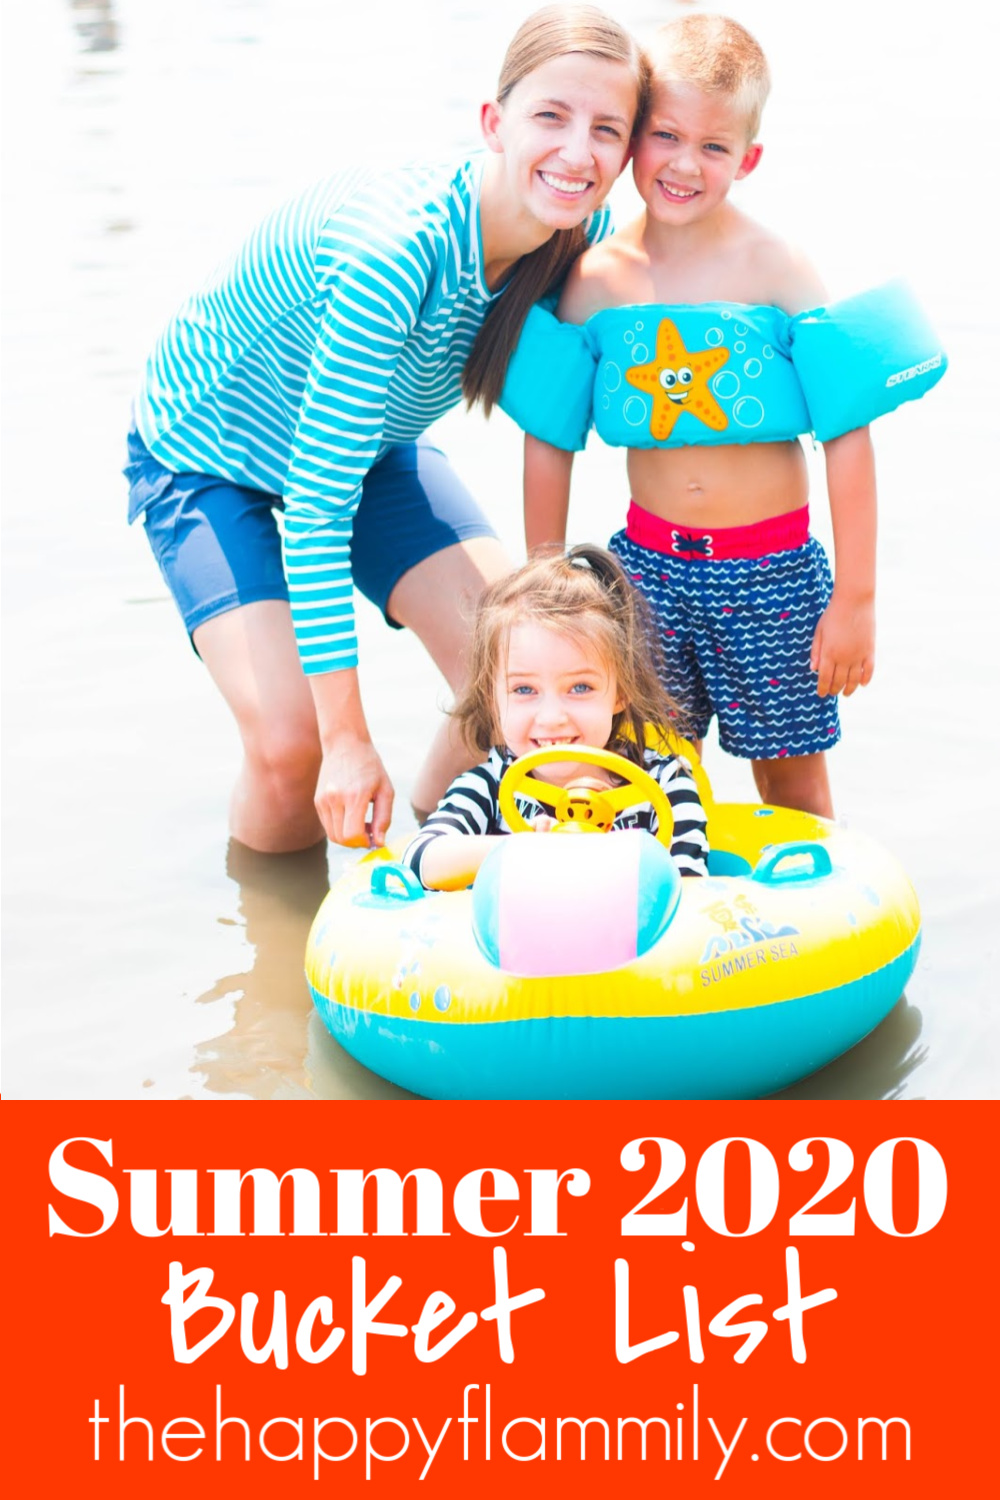 Summer 2020 bucket list quarantine. Summer bucket list 2020 with kids. Summer bucket list ideas. Summer bucket list ideas. Family summer bucket list for kids. Family Summer activities with kids. Social distance summer activities. Things to do this summer with kids. How to have a fun summer with family. #family #summer #familyfun #familytravel #kids